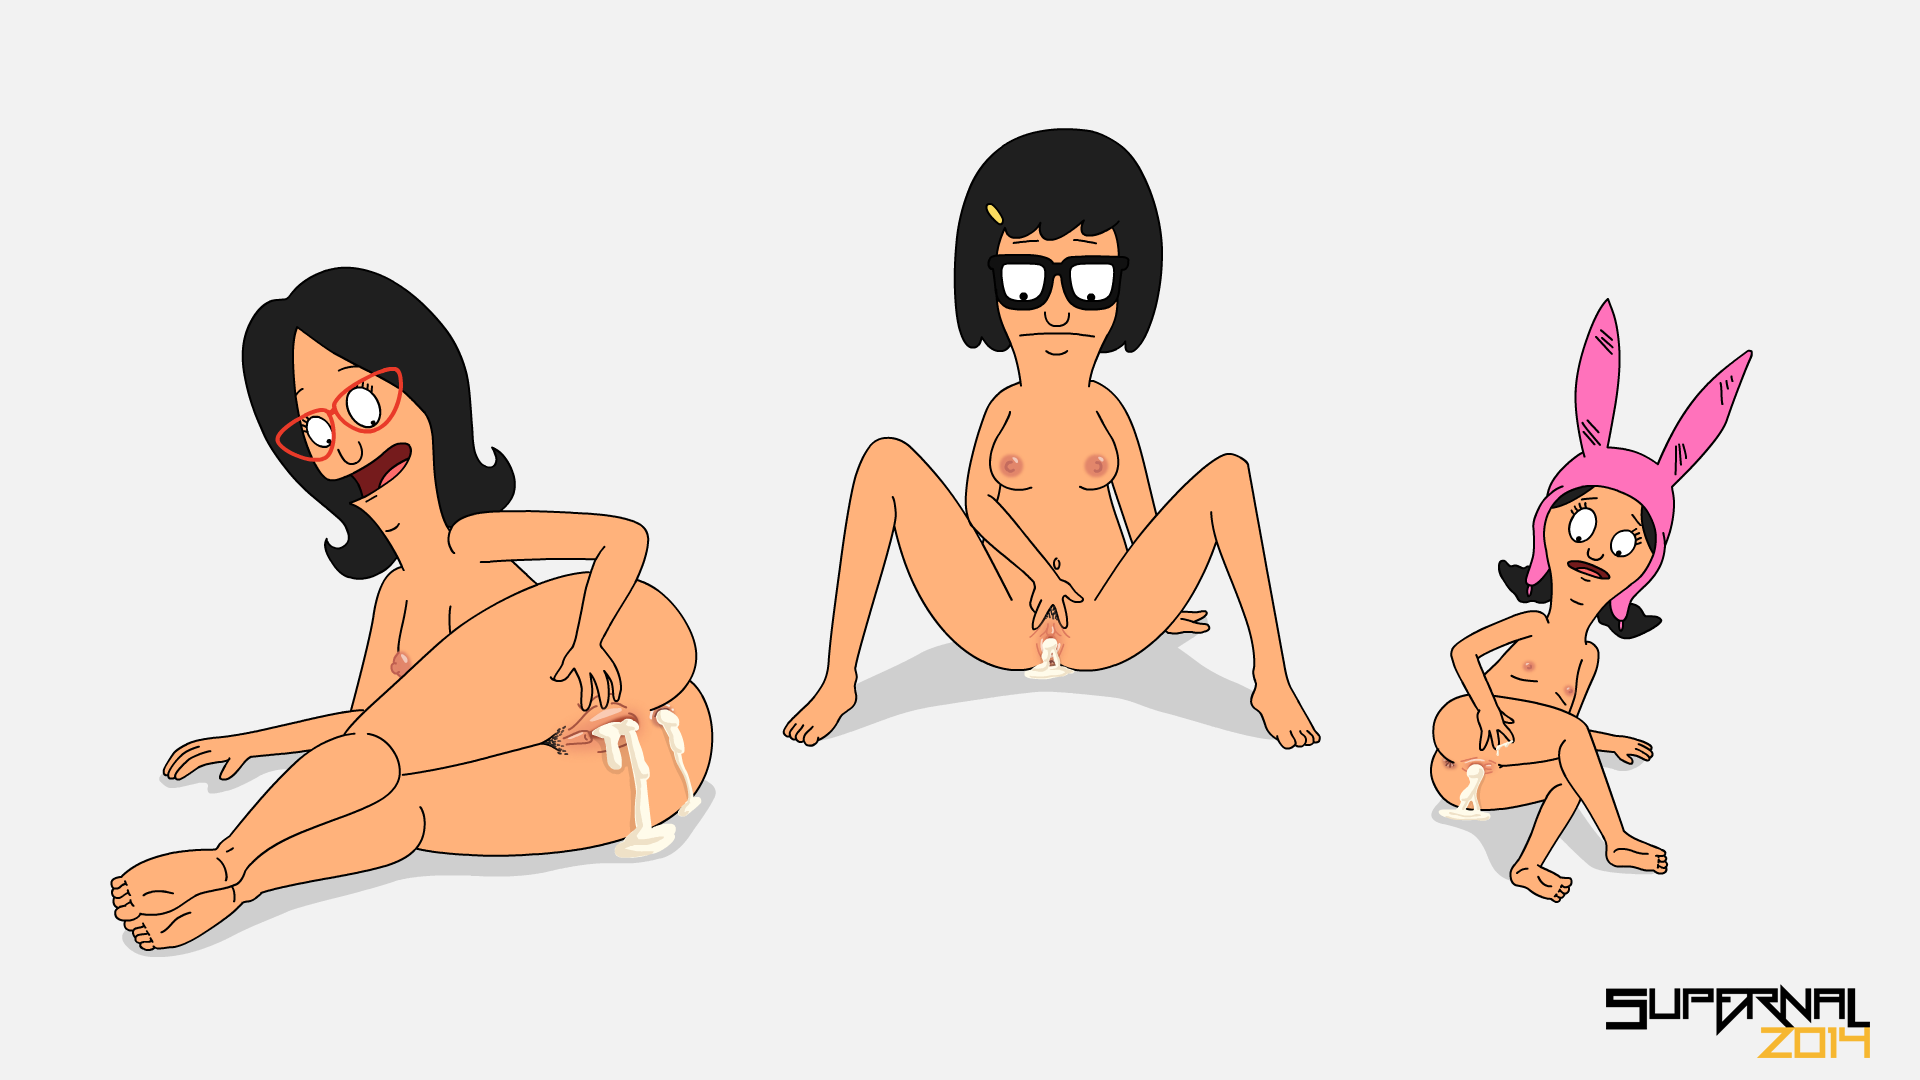 Free Bobs Burgers Porn co/ promotions